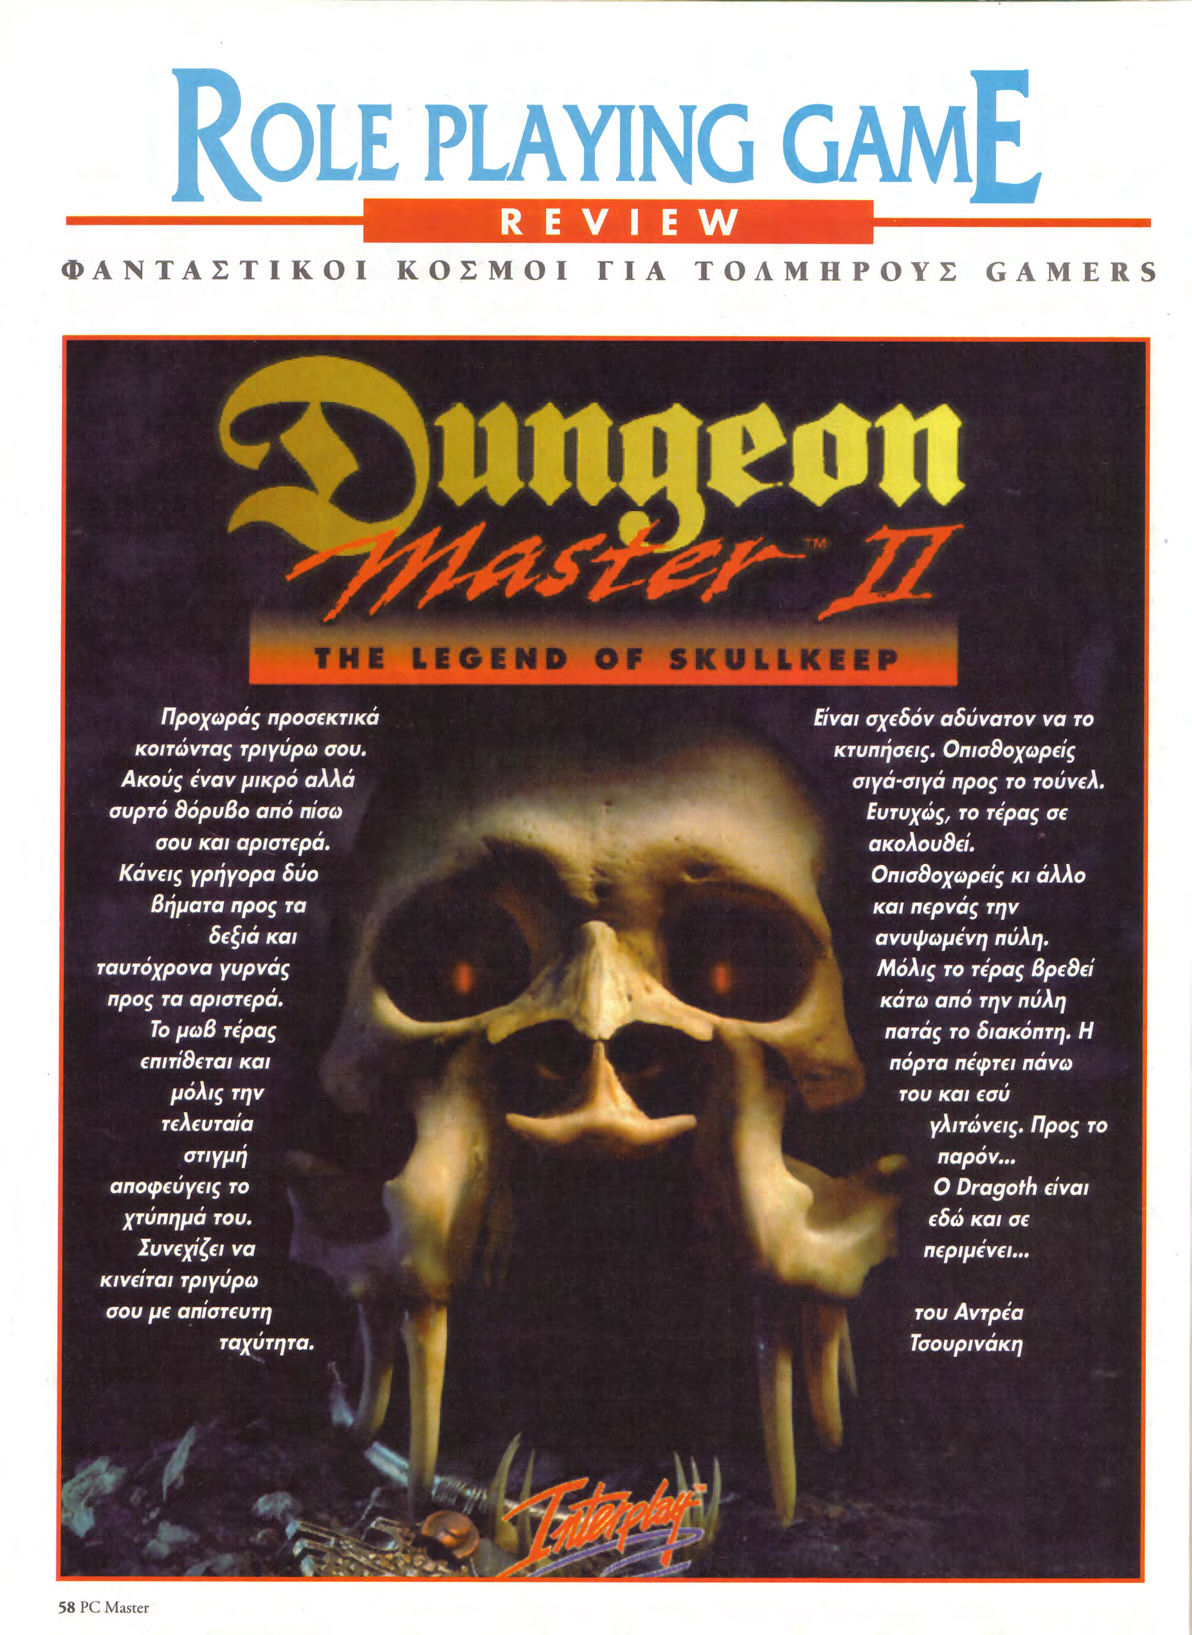 Dungeon Master II for PC Review published in Greek magazine 'PC Master', Issue #67 November 1995, Page 58